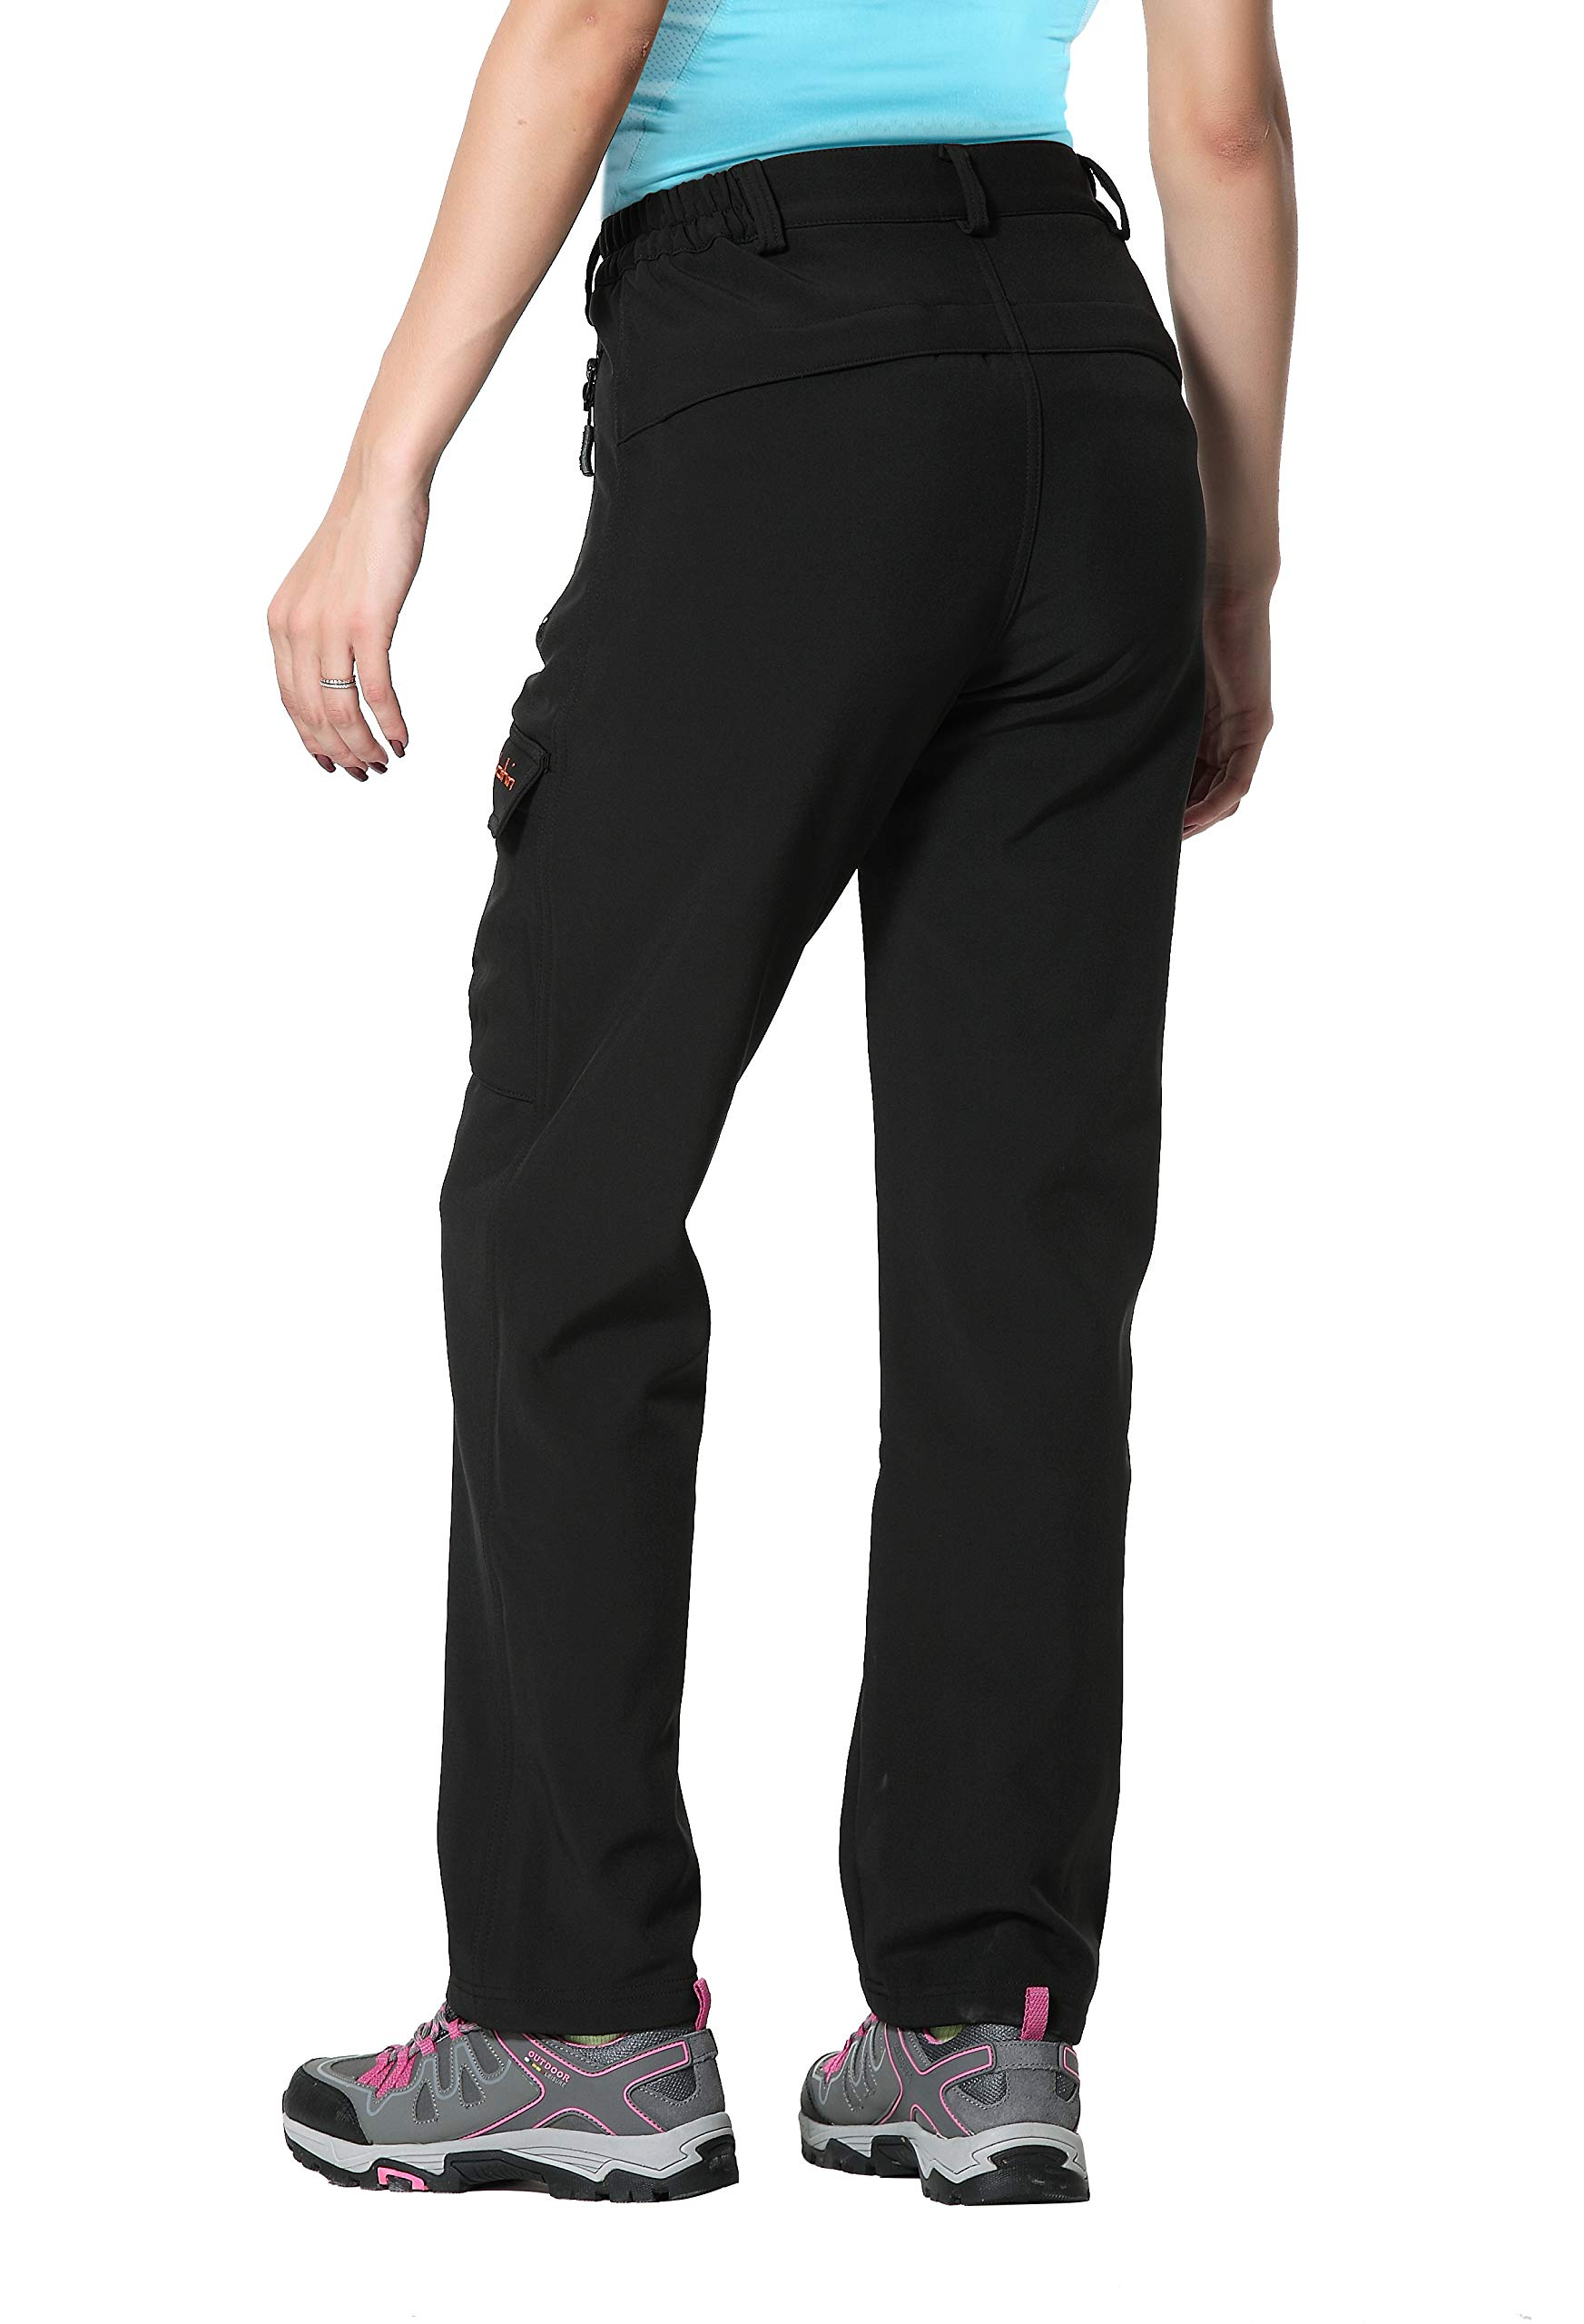 Clothin Women's Fleece Lined Soft Shell Cargo Pants Water Repellent, Wind Resistant